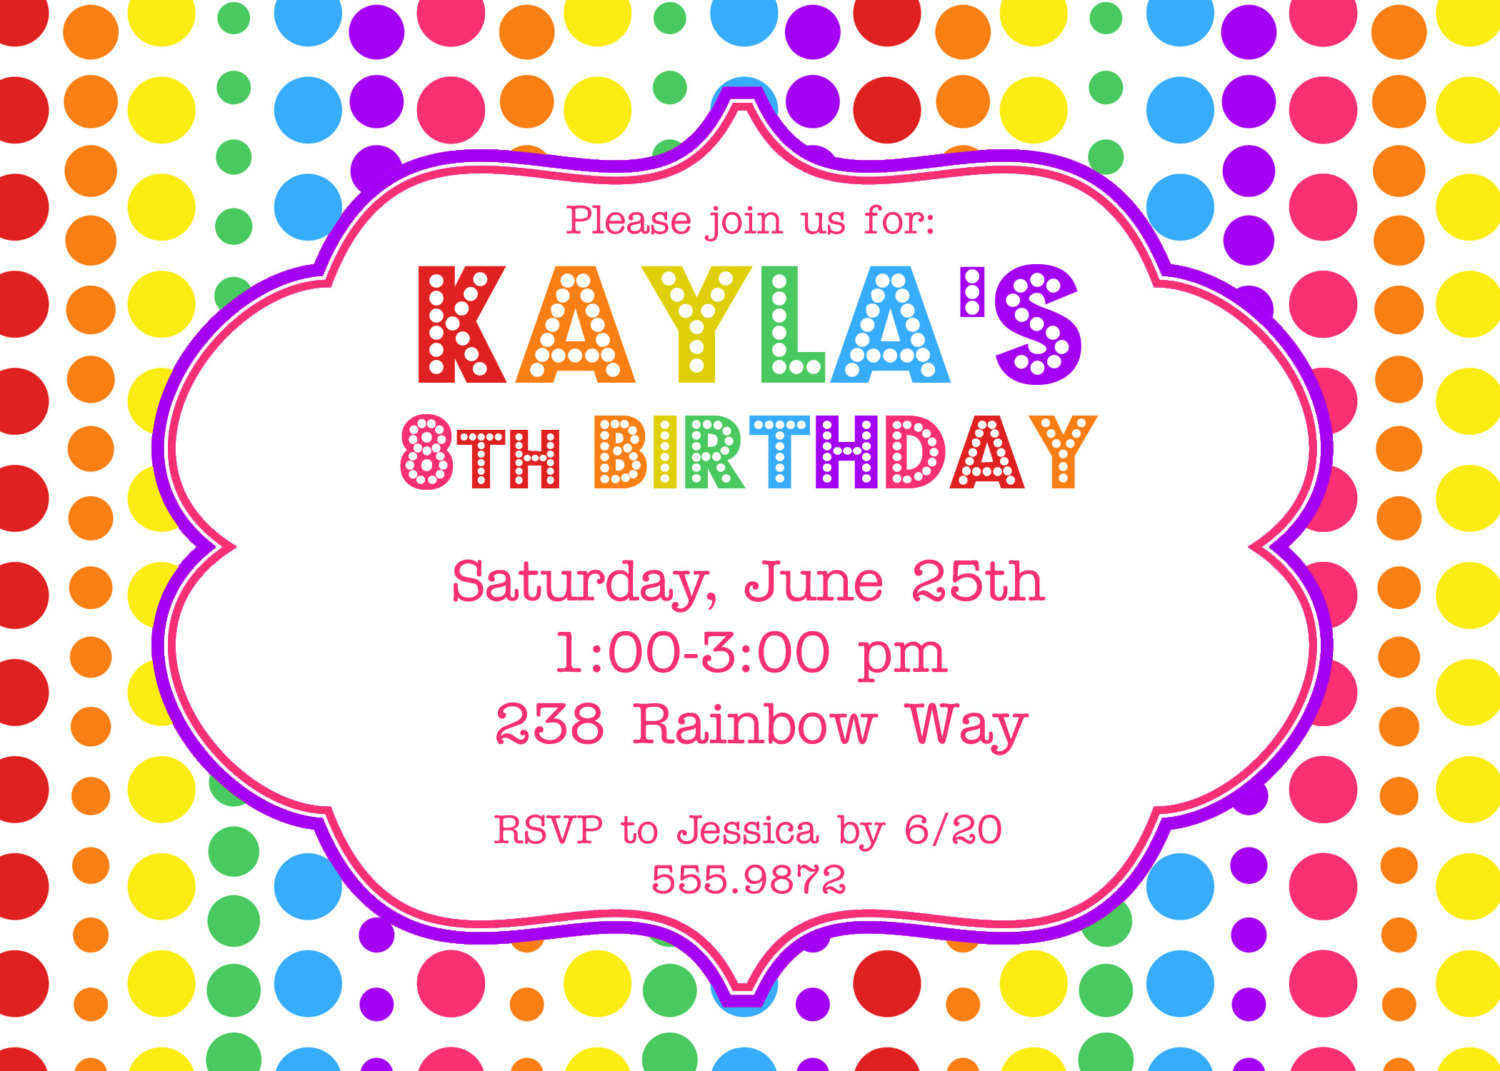 Invitations For Birthday Party As An Extra Ideas About How To Make Surprising Birthday Invitation 19920163 Cookifi